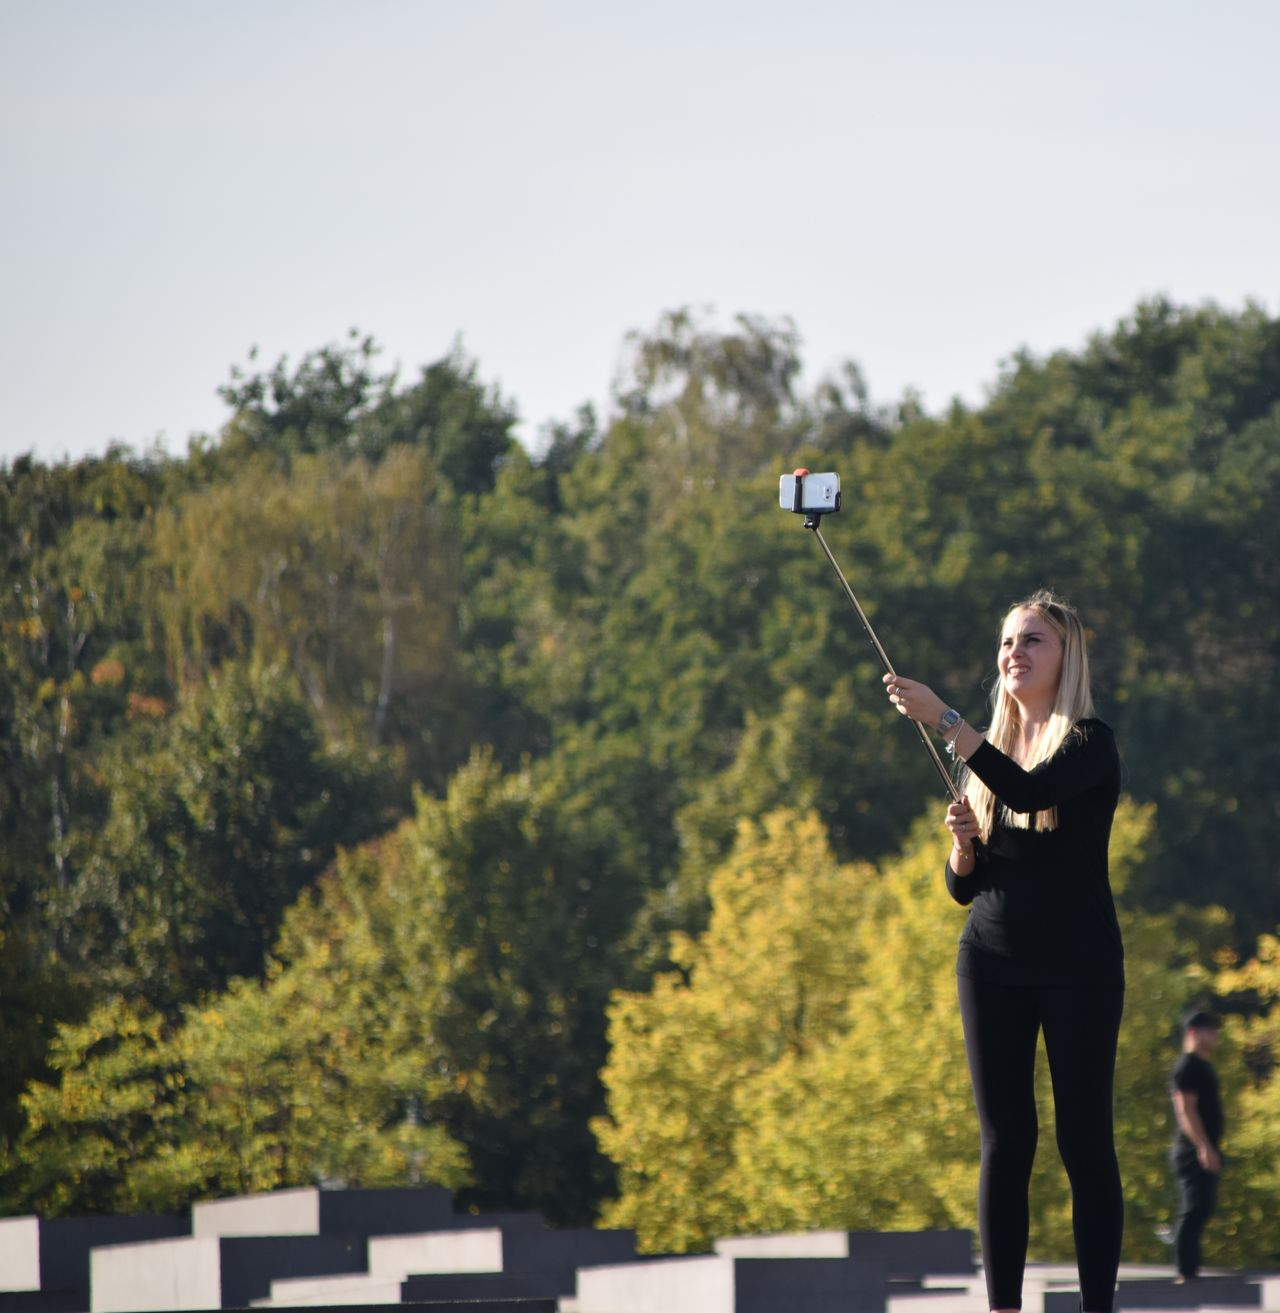 Mobile Conversations One Woman Only Mobile Mobile Photography Berlin Tourist Selfıe Selfie Stick Standing Wearing Black Blonde Blonde Girl Sunny Outdoors